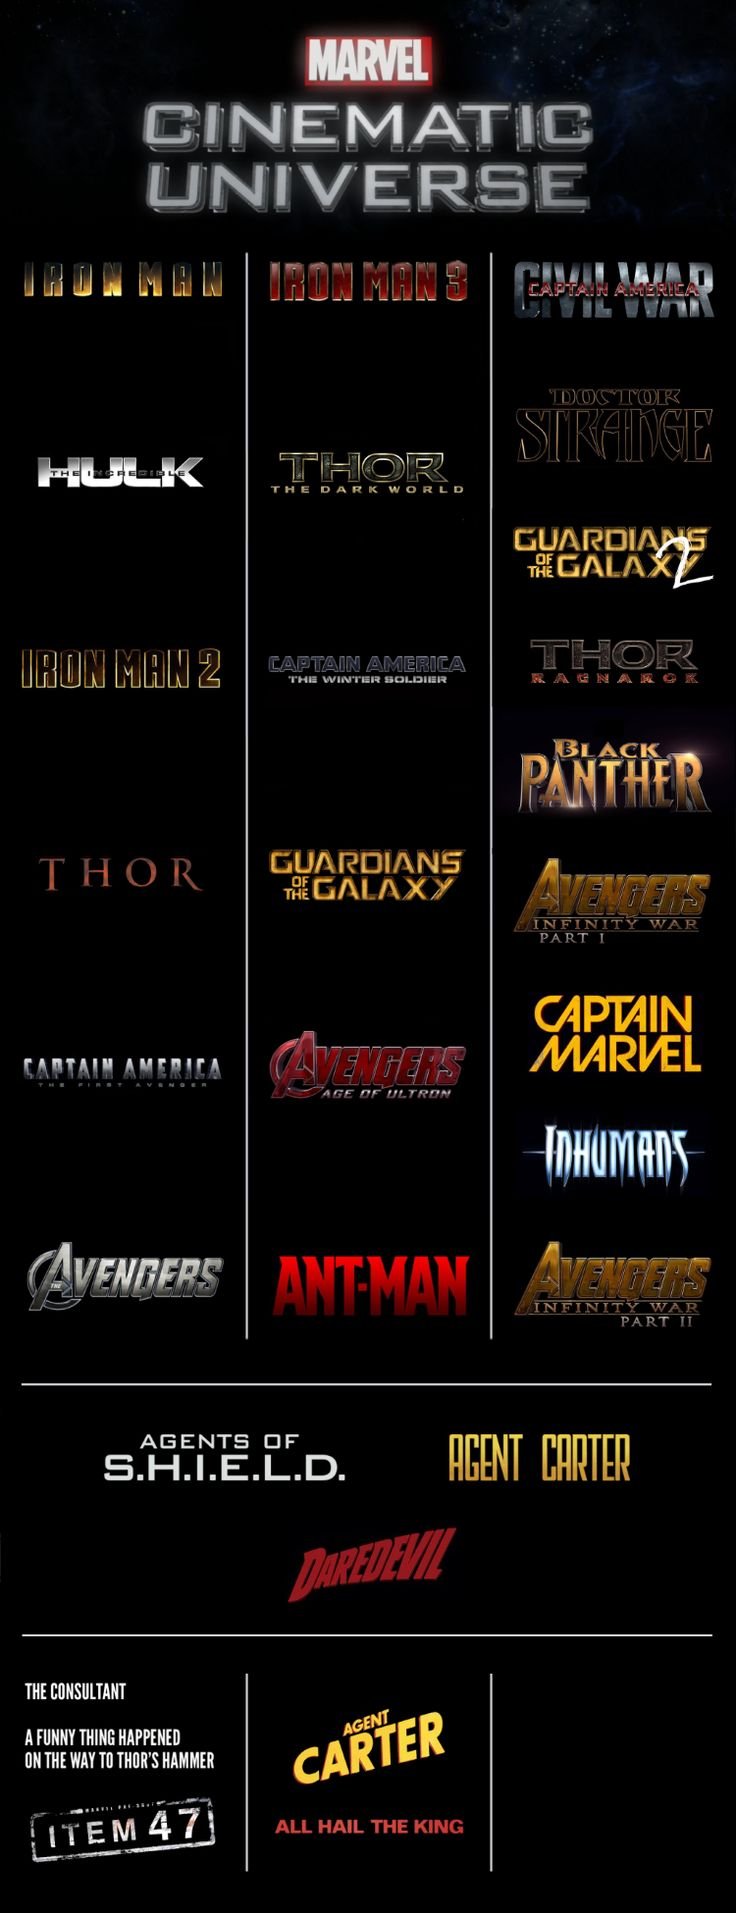 Marvel Cinematic Universe through Phase 3